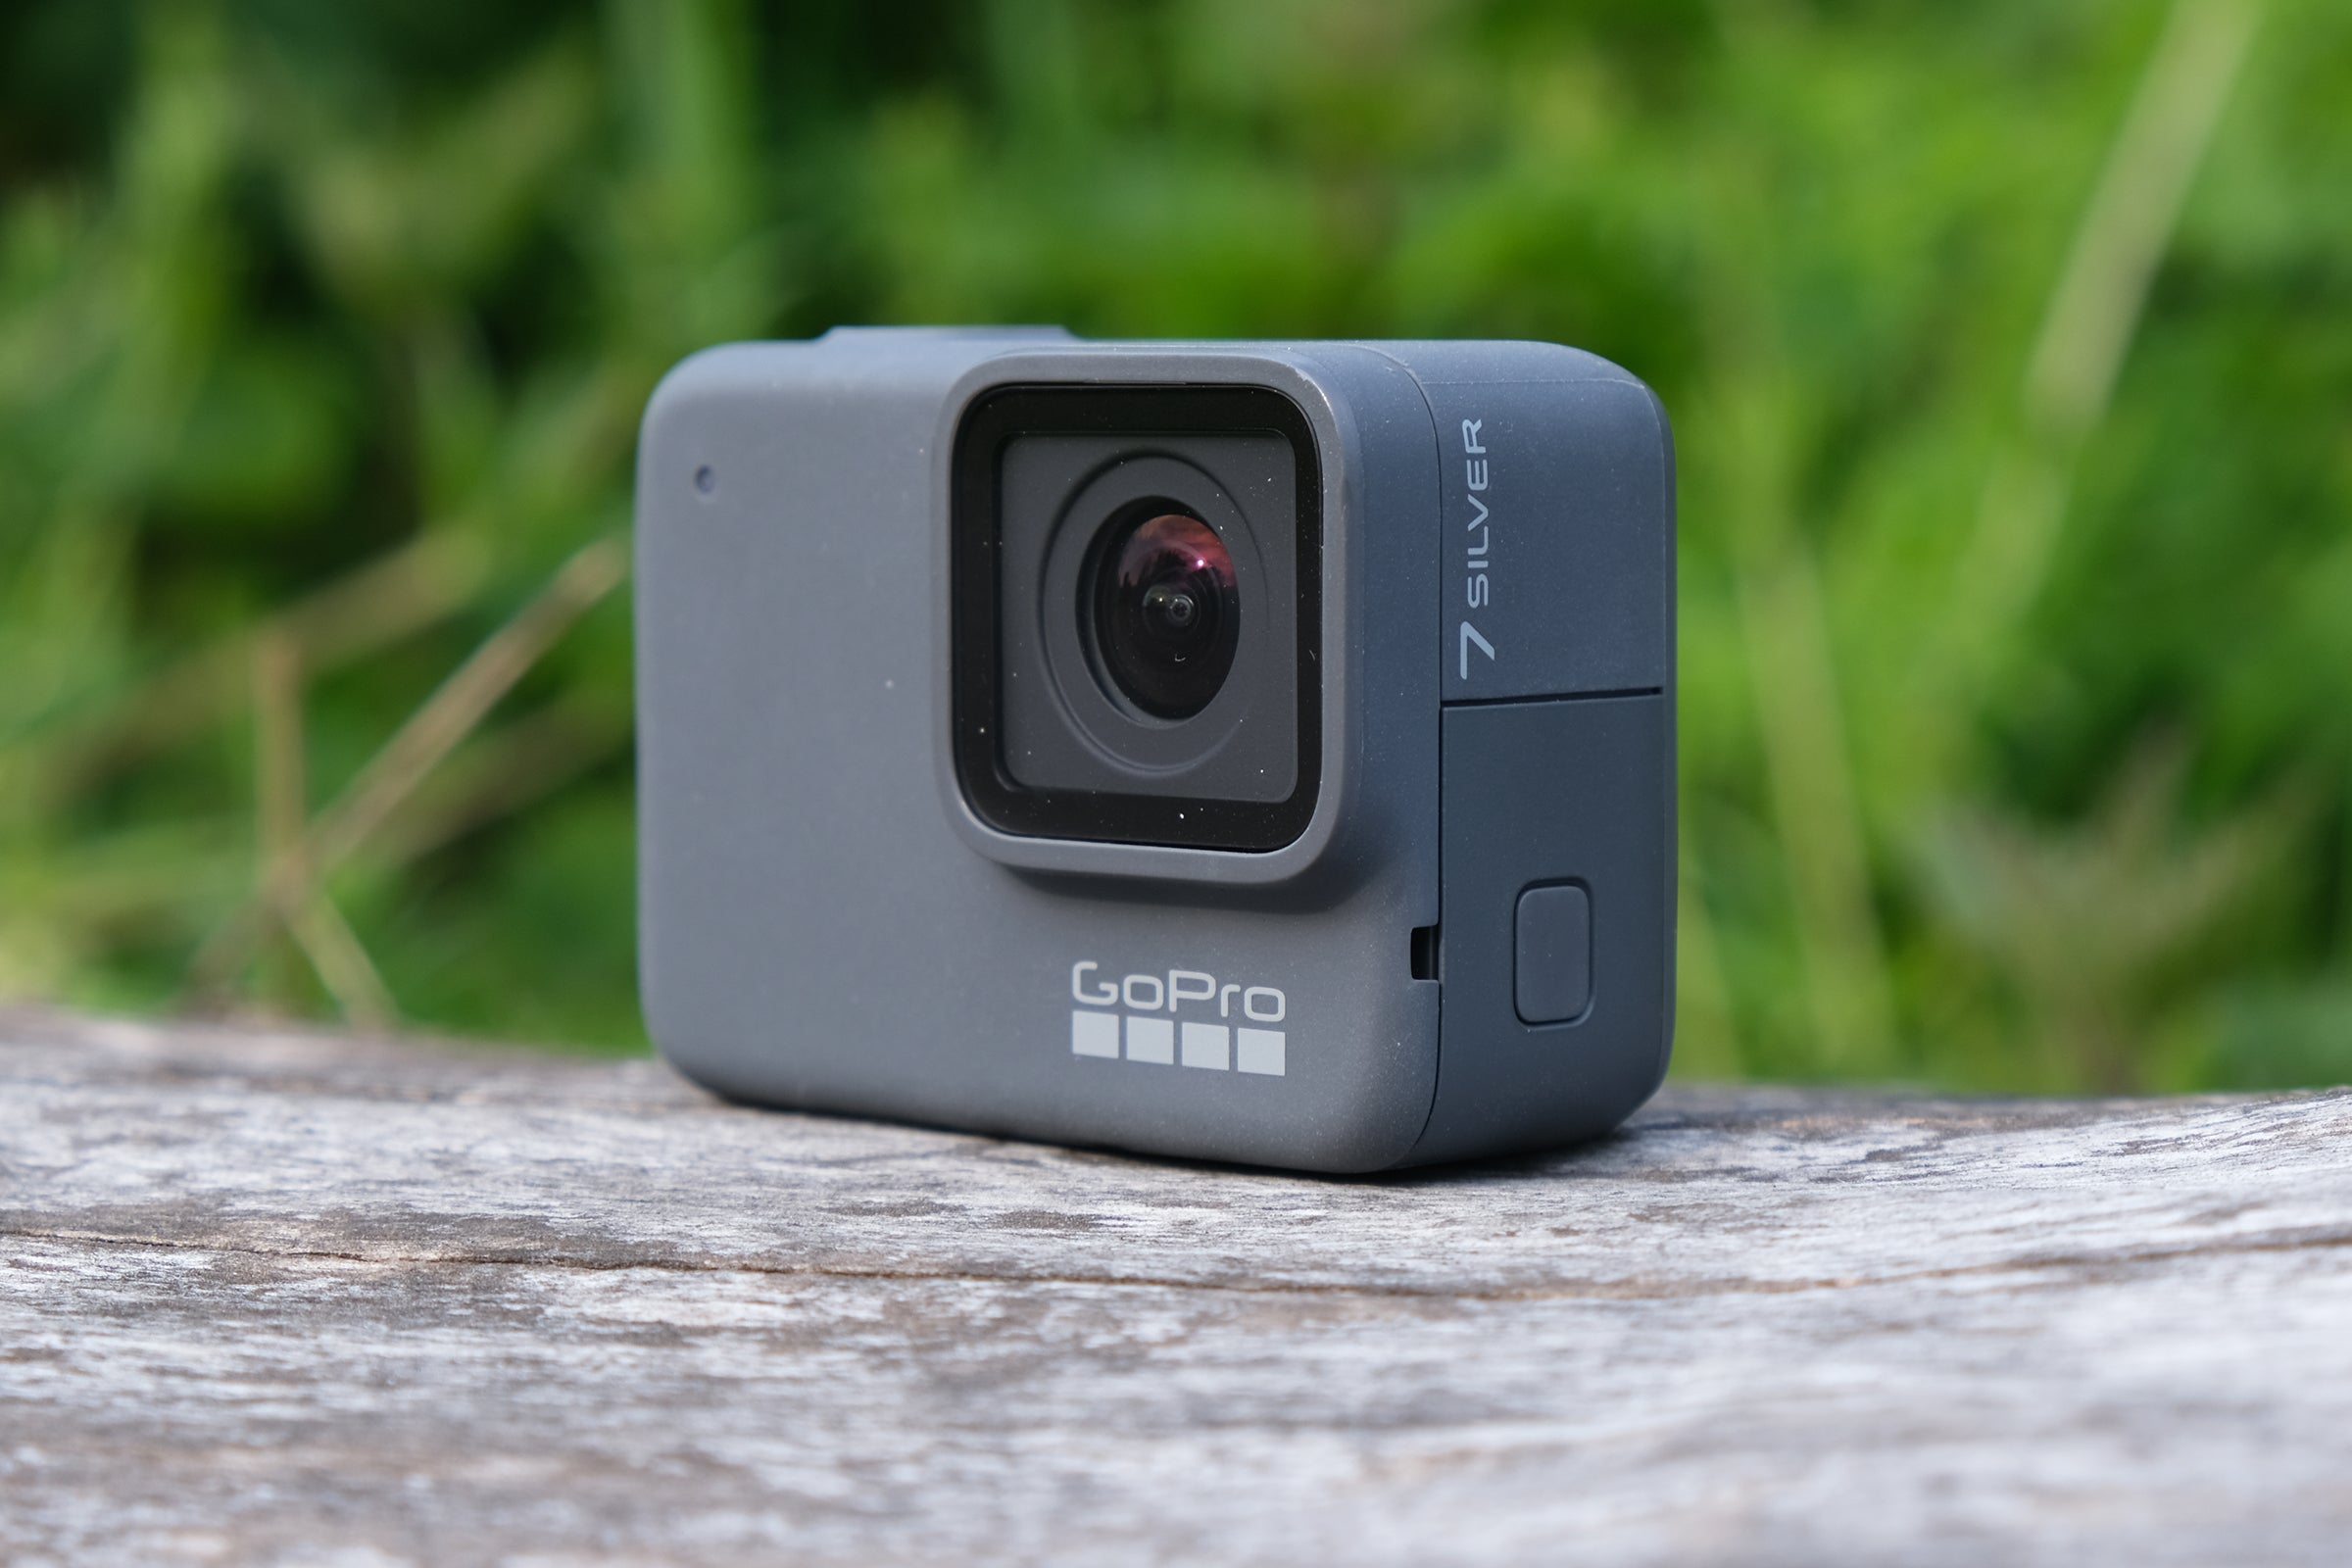 Gopro Hero 7 Silver Review Trusted Reviews